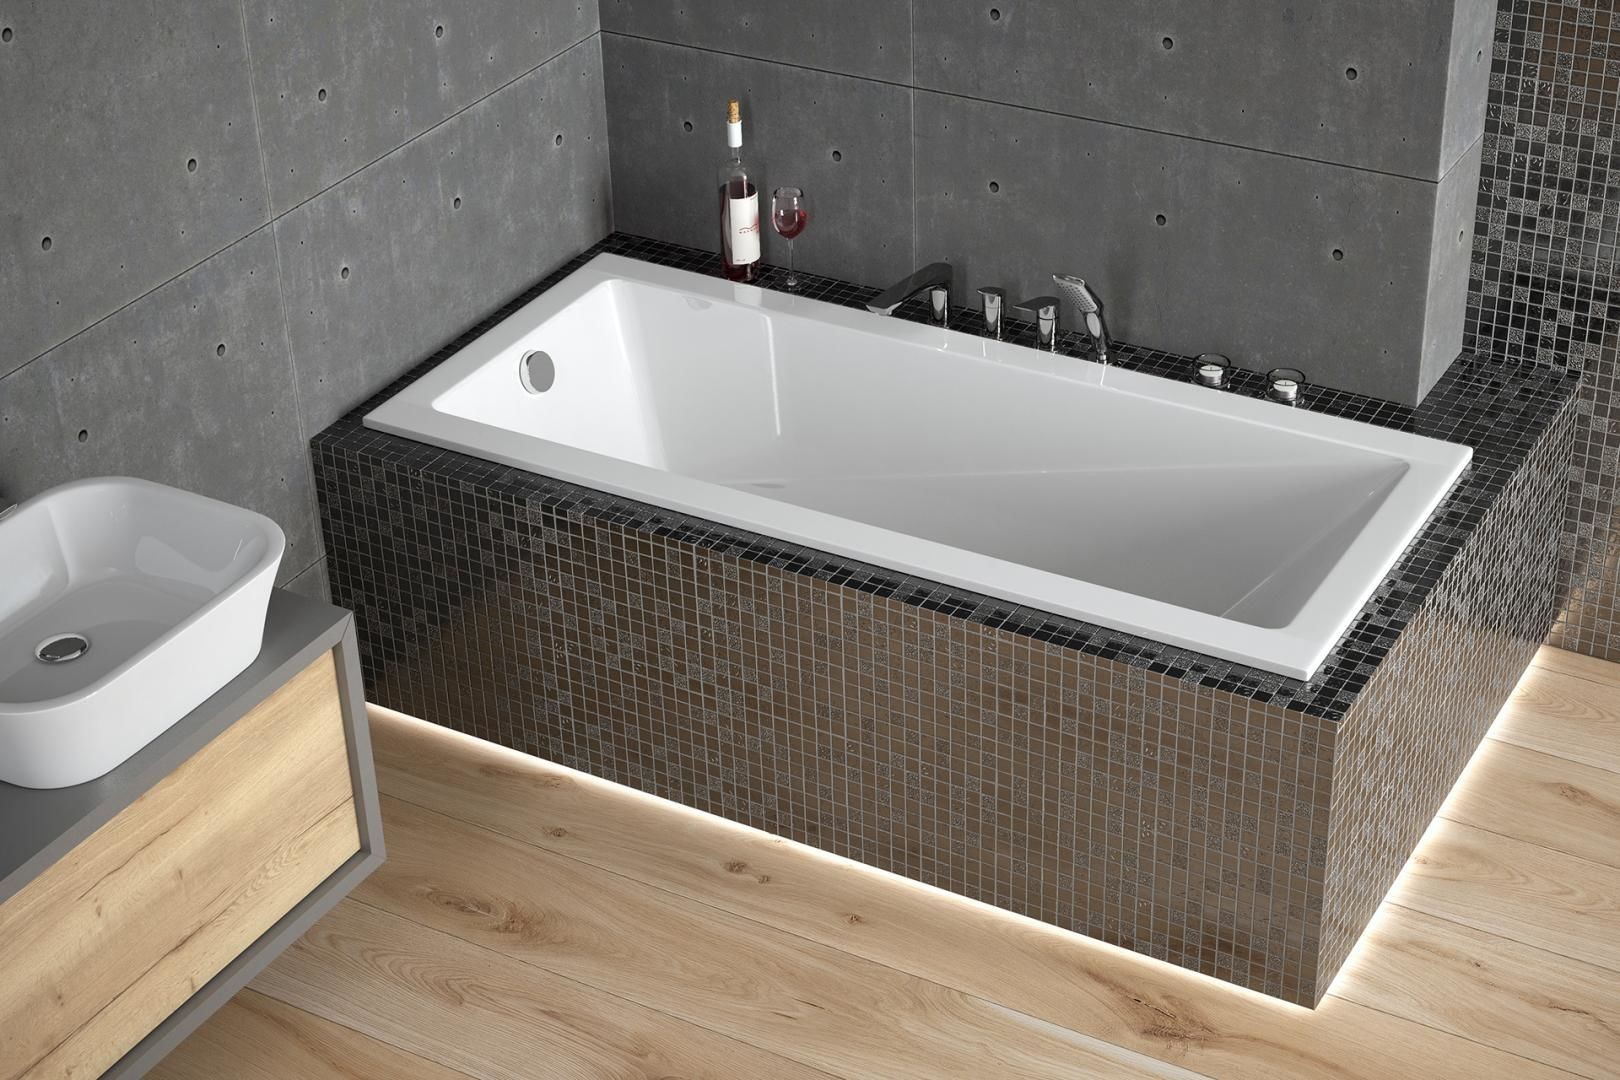 Besco wanna prostokątna Modern Slim 180 x 80 WAM-180-SL